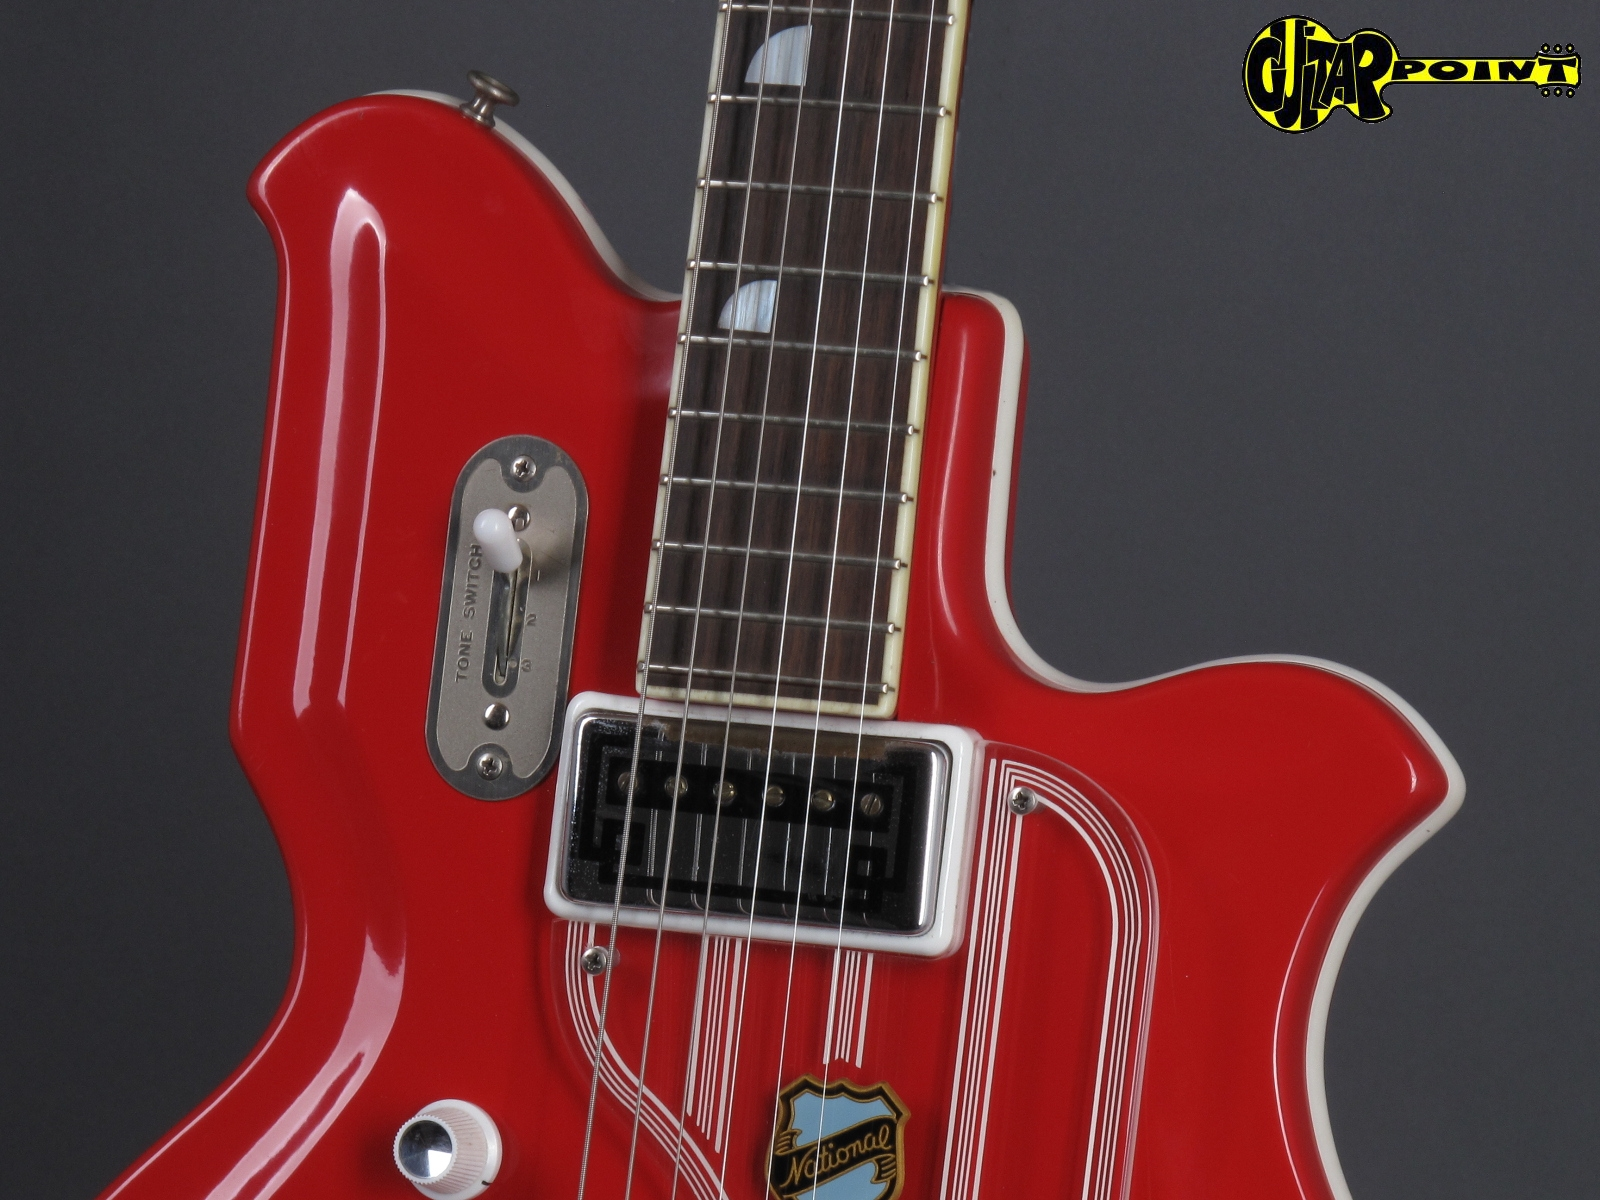 https://guitarpoint.de/app/uploads/products/1965-national-newport-82-pepper-red-made-in-usa/National65NwpRed_I-56862_51.jpg